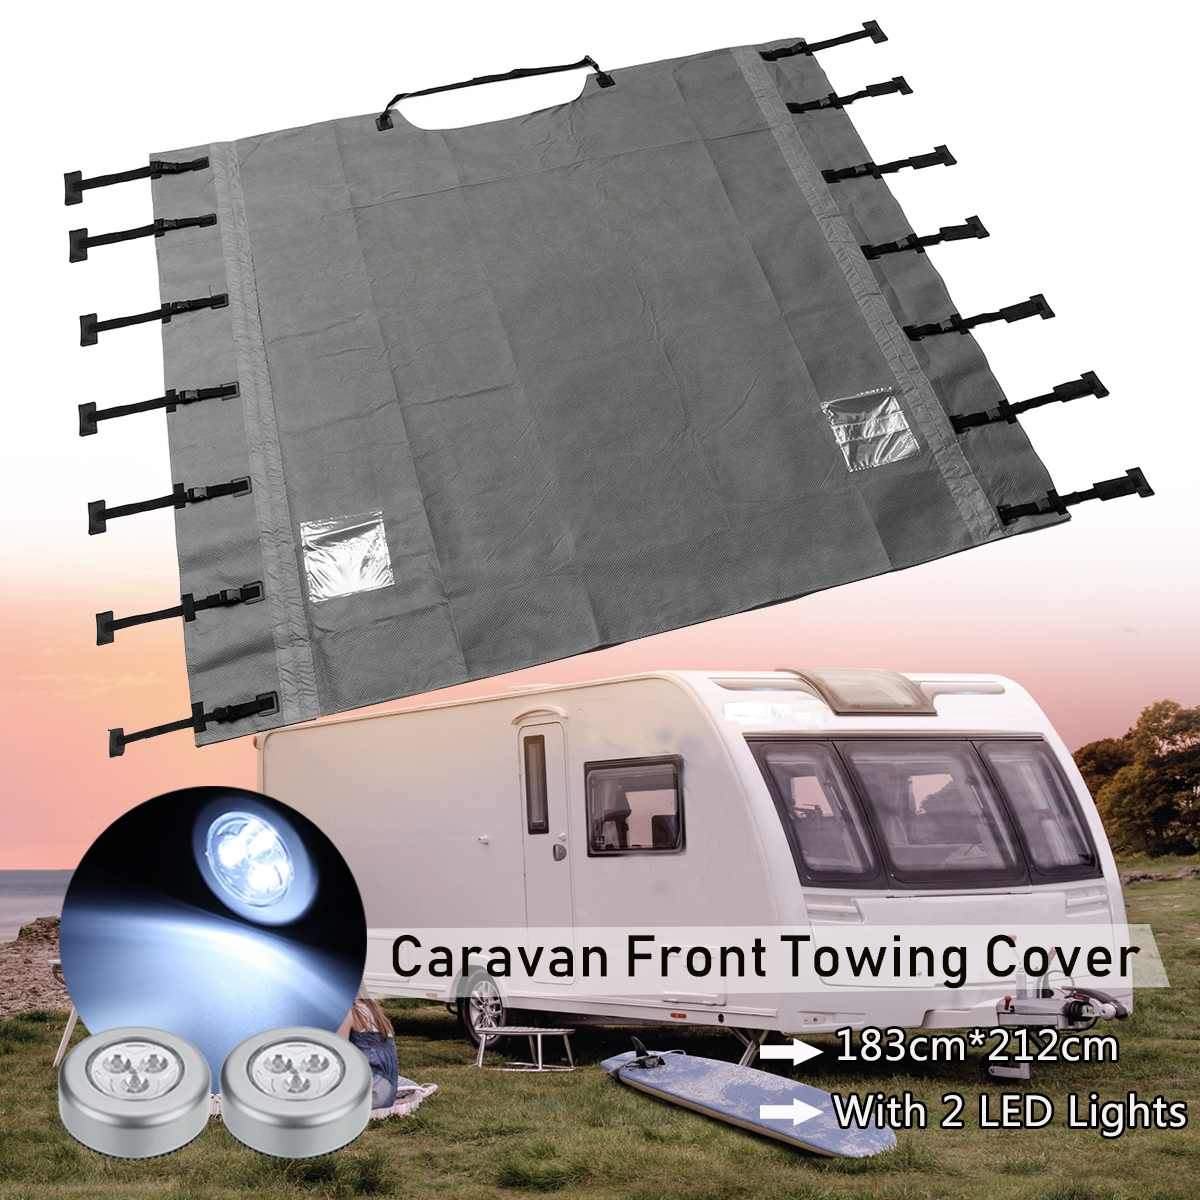 Universal Caravan Front Towing Cover Waterproof Dustproof with LED Lights for <font><b>RV</b></font> <font><b>Motorhome</b></font> image